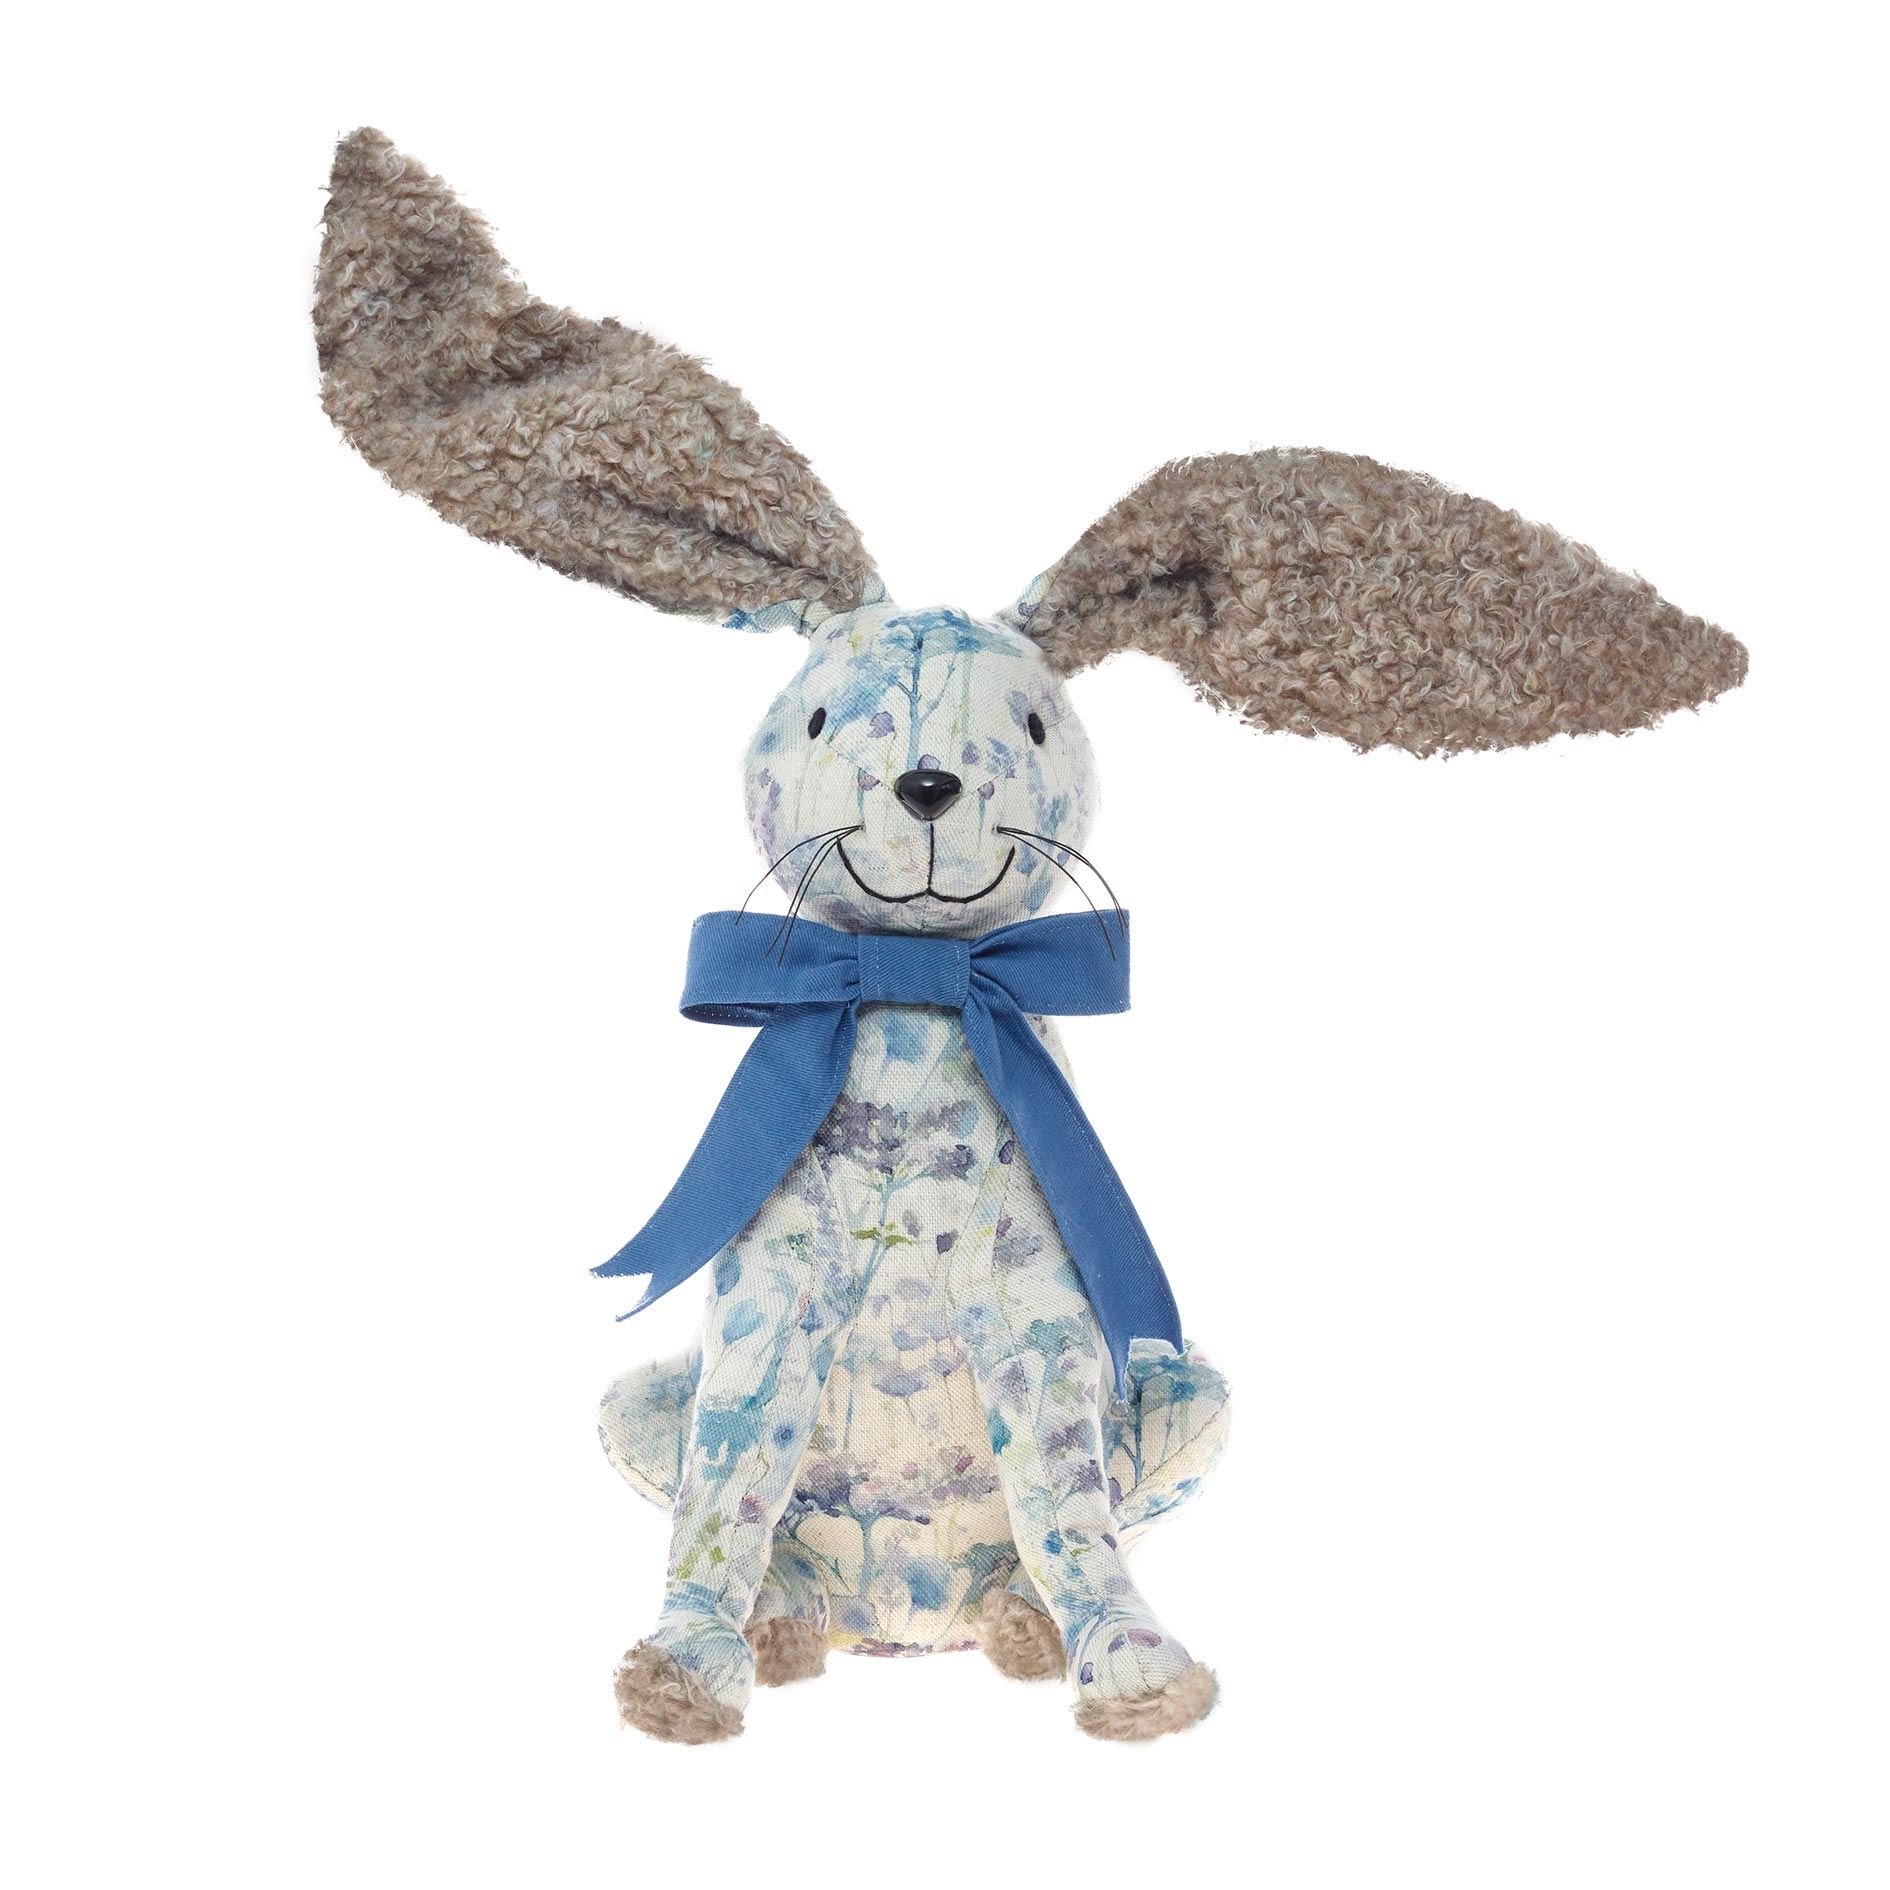 Voyage Maison Hattie Hare doorstop white and blue fabric with contrasting faux fur